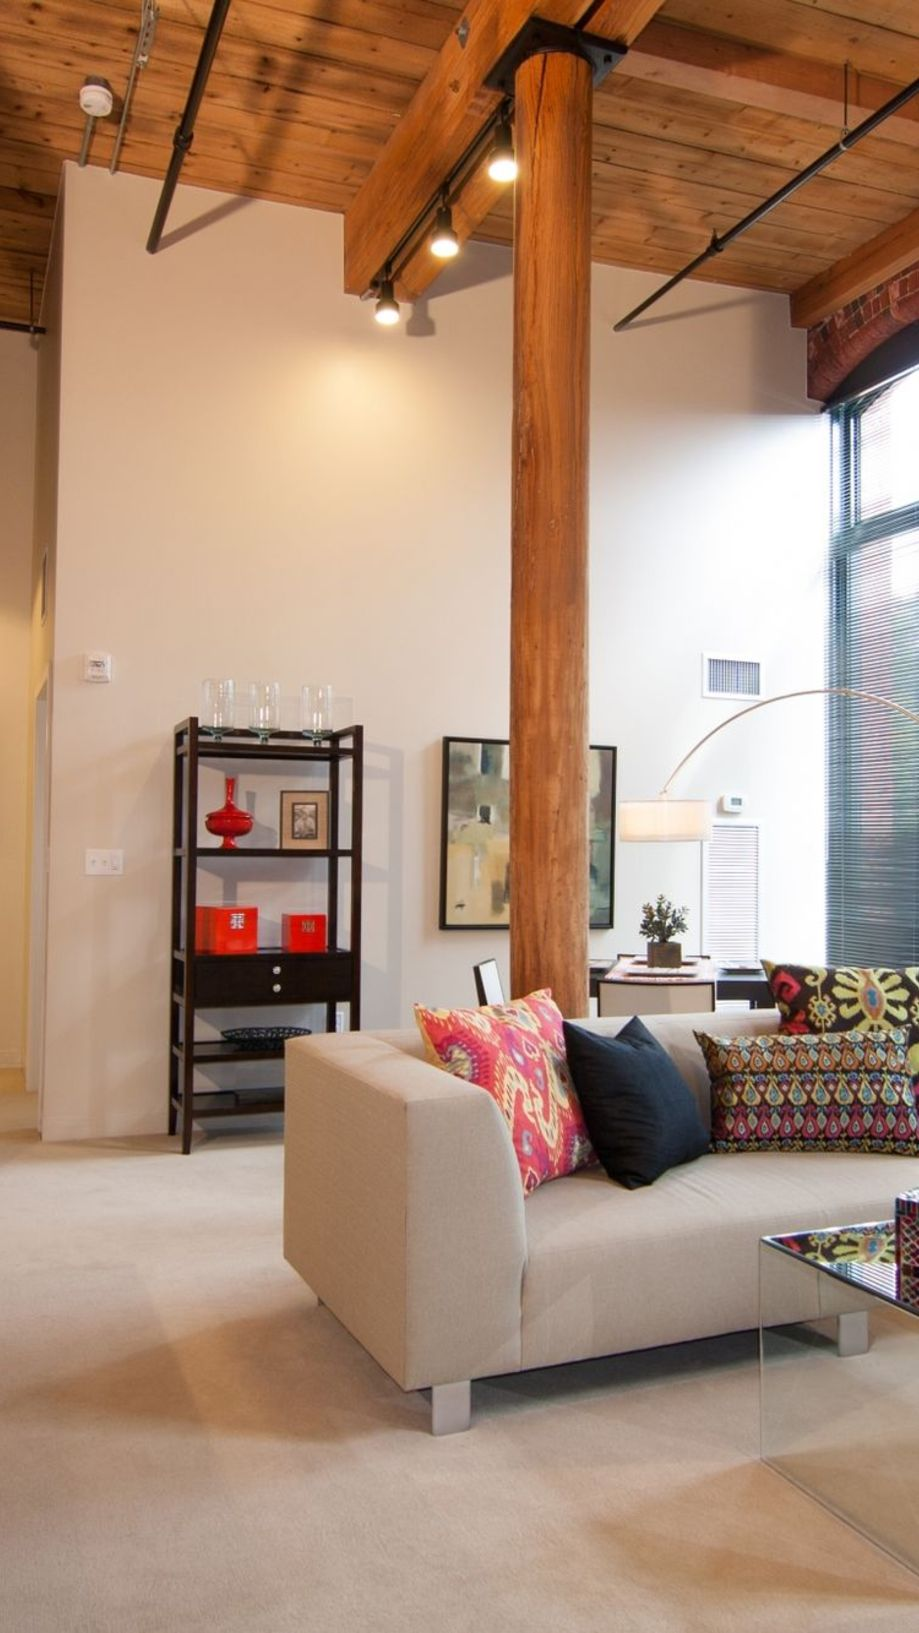 Amazing Apartments For Rent In Lawrence Ma Loft Five50 Home Download Free Architecture Designs Scobabritishbridgeorg